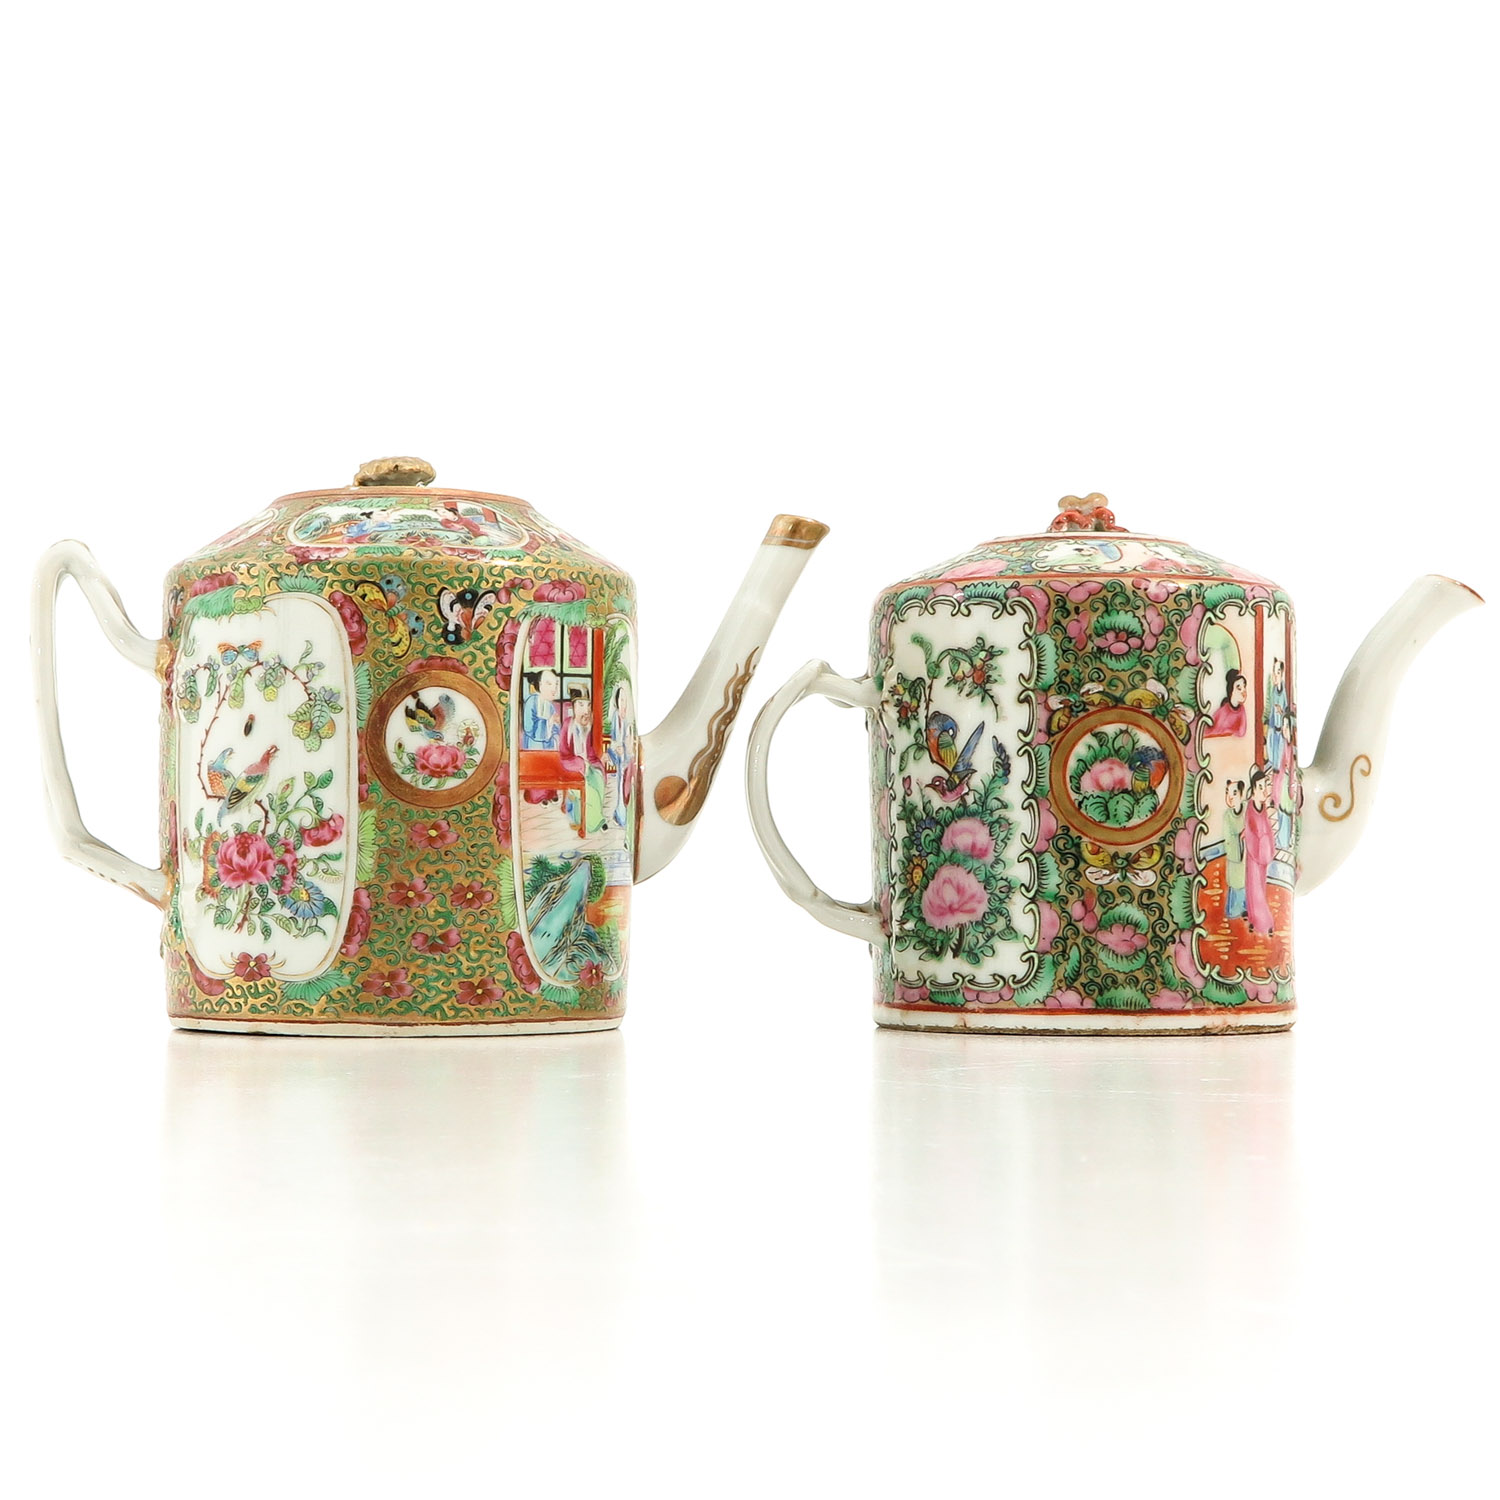 A Lot of 2 Cantonese Teapots - Image 3 of 9